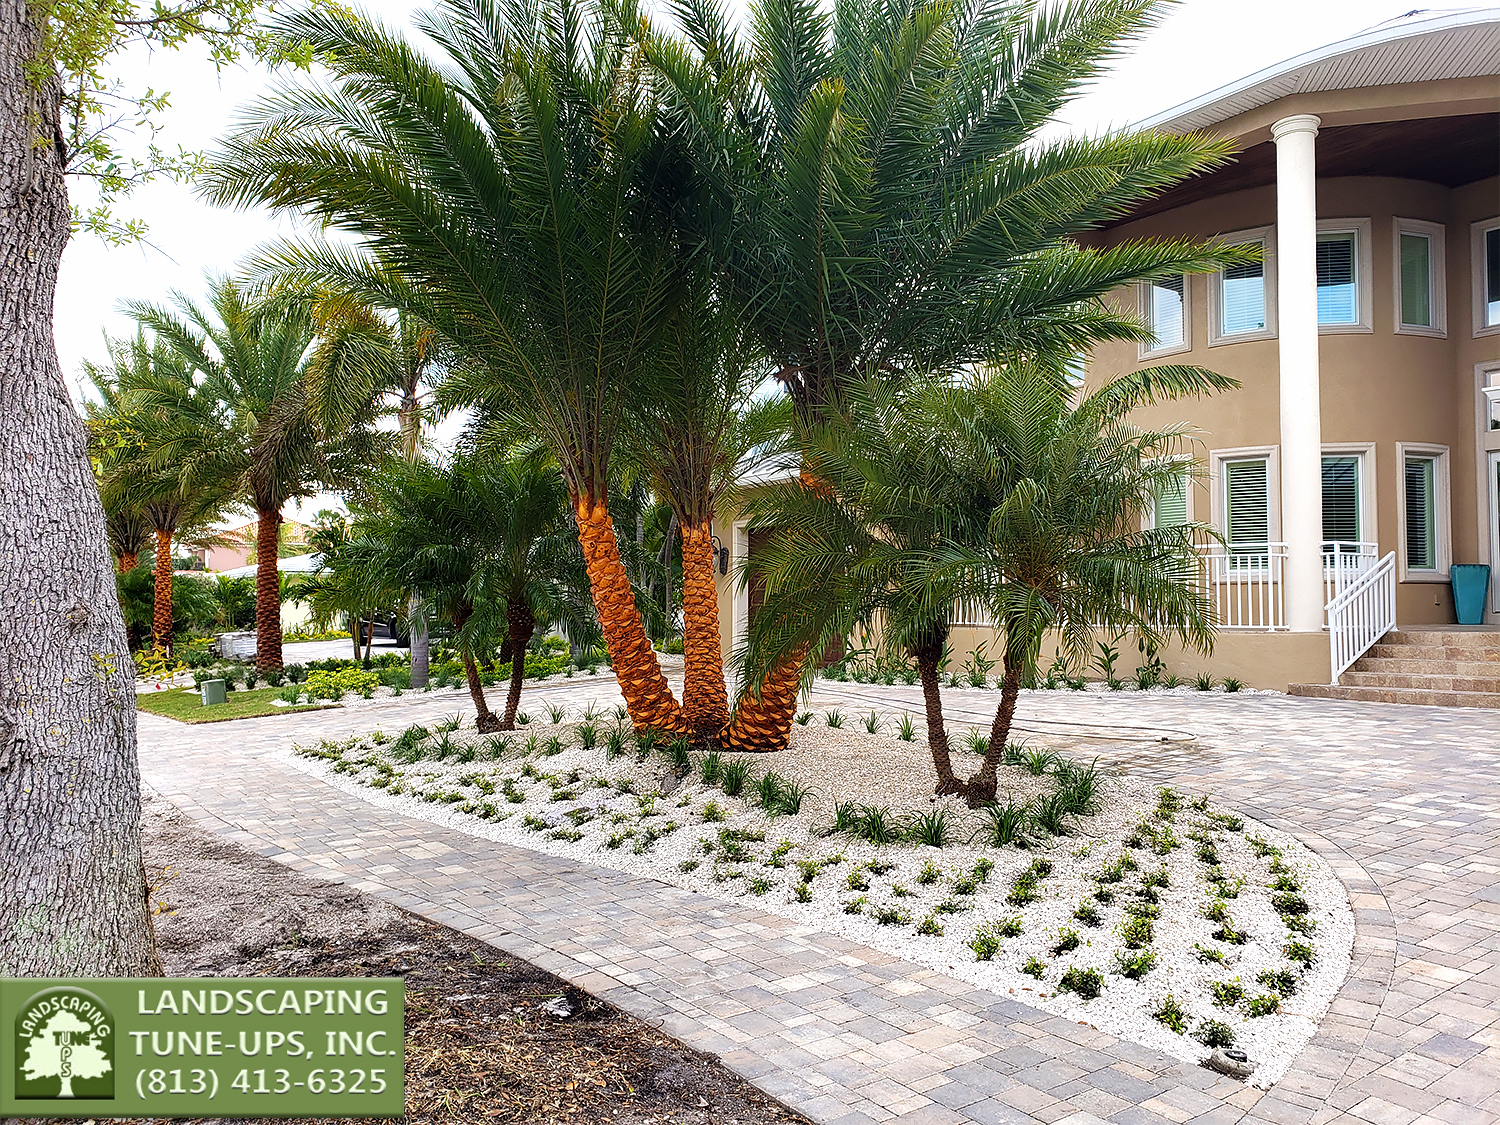 Landscape Contractor Tampa